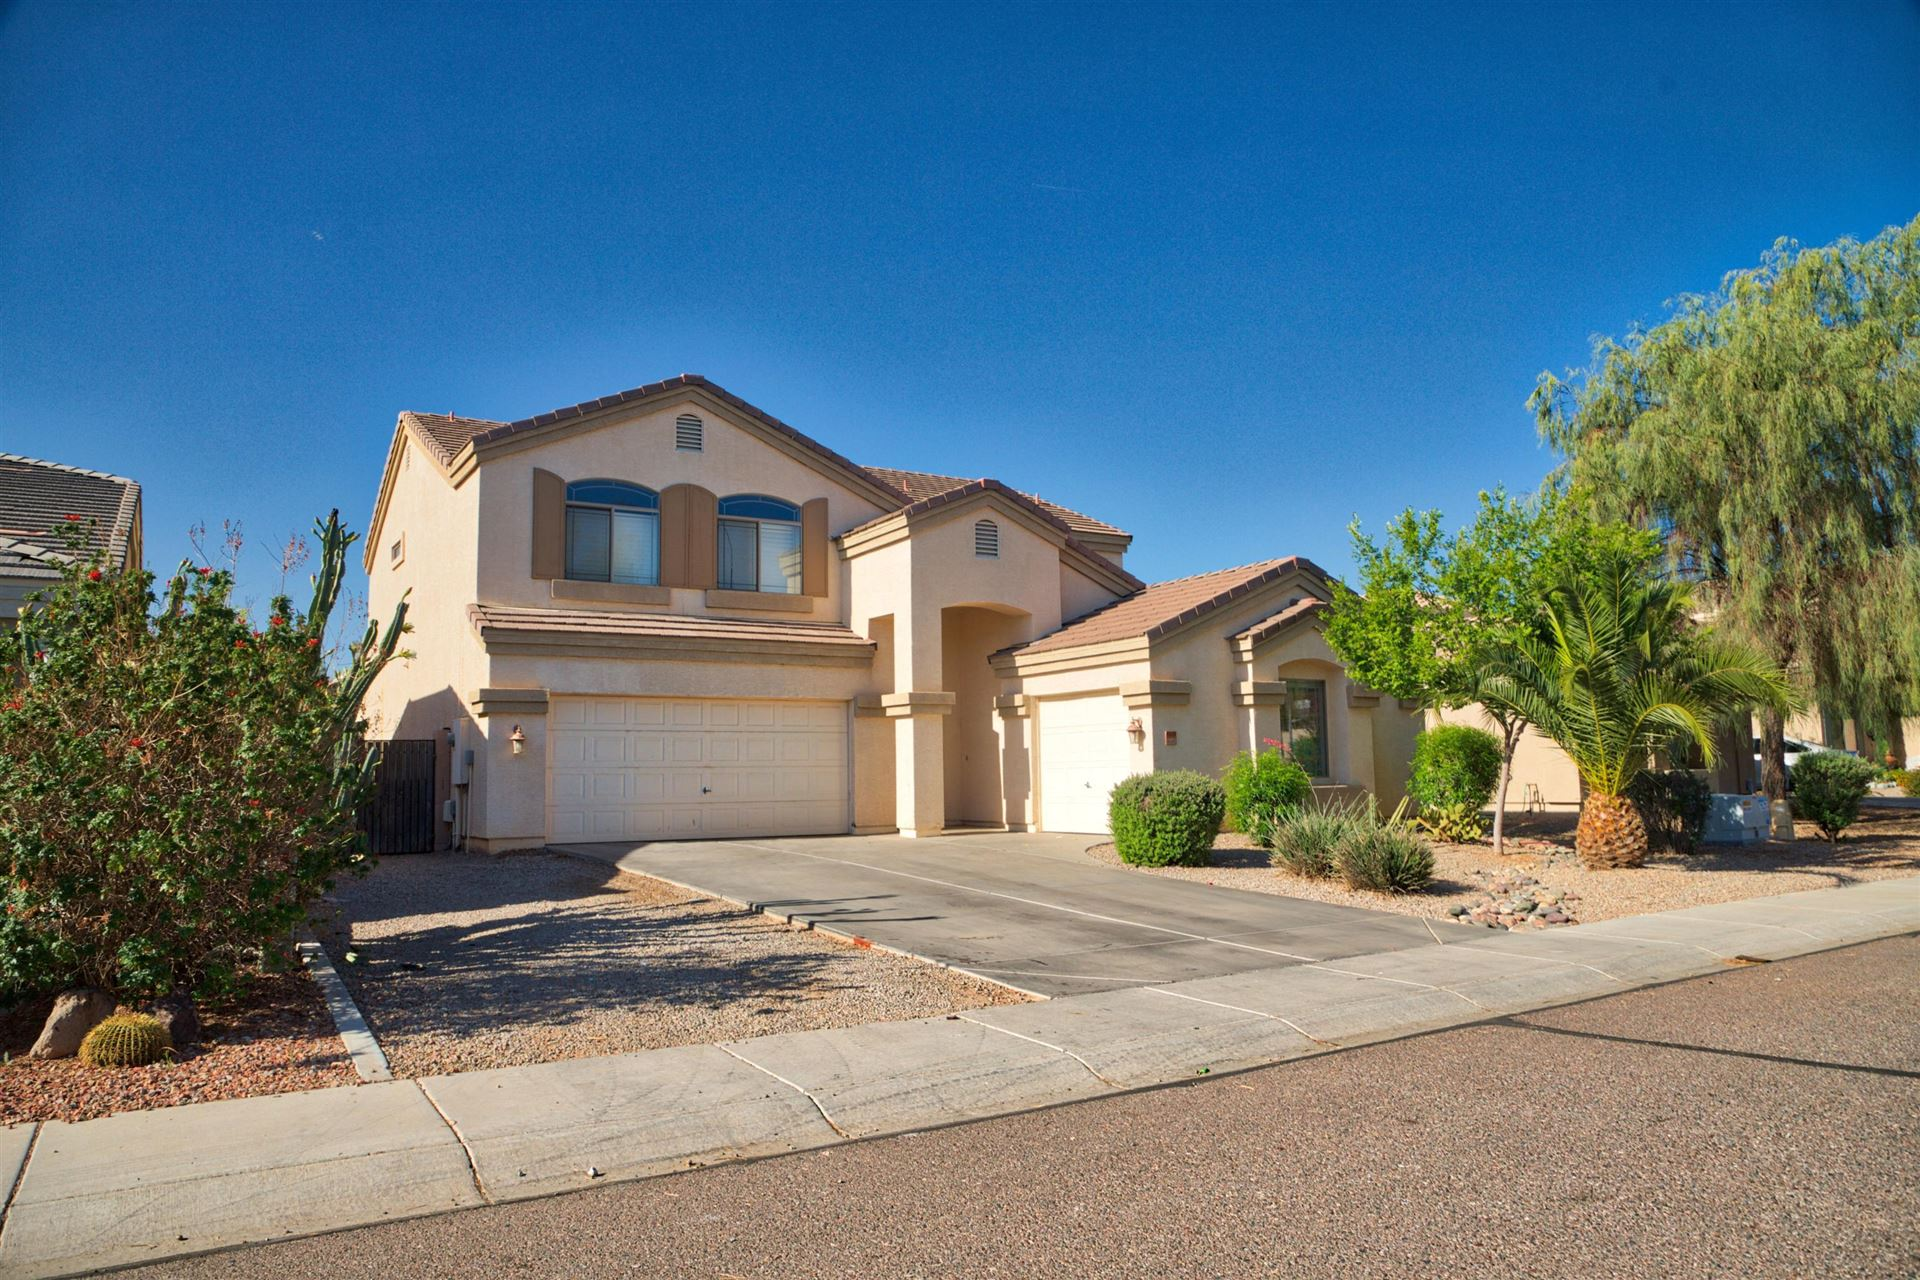 Photo of 10519 W MOHAVE Street, Tolleson, AZ 85353 (MLS # 6233185)